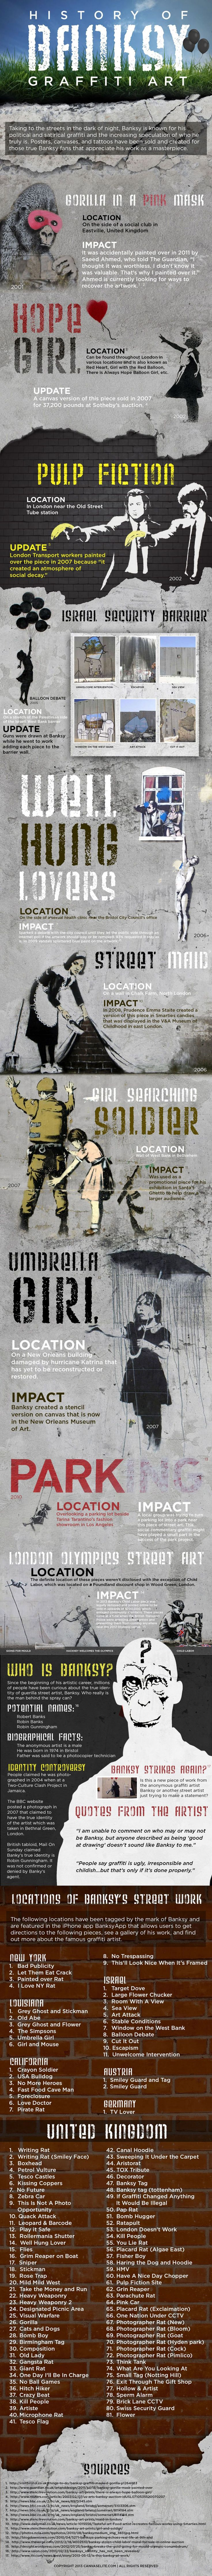 Banksy Artwork Names and Locations Infographic. Topic: painting, grafitti, street art, painter, activism.